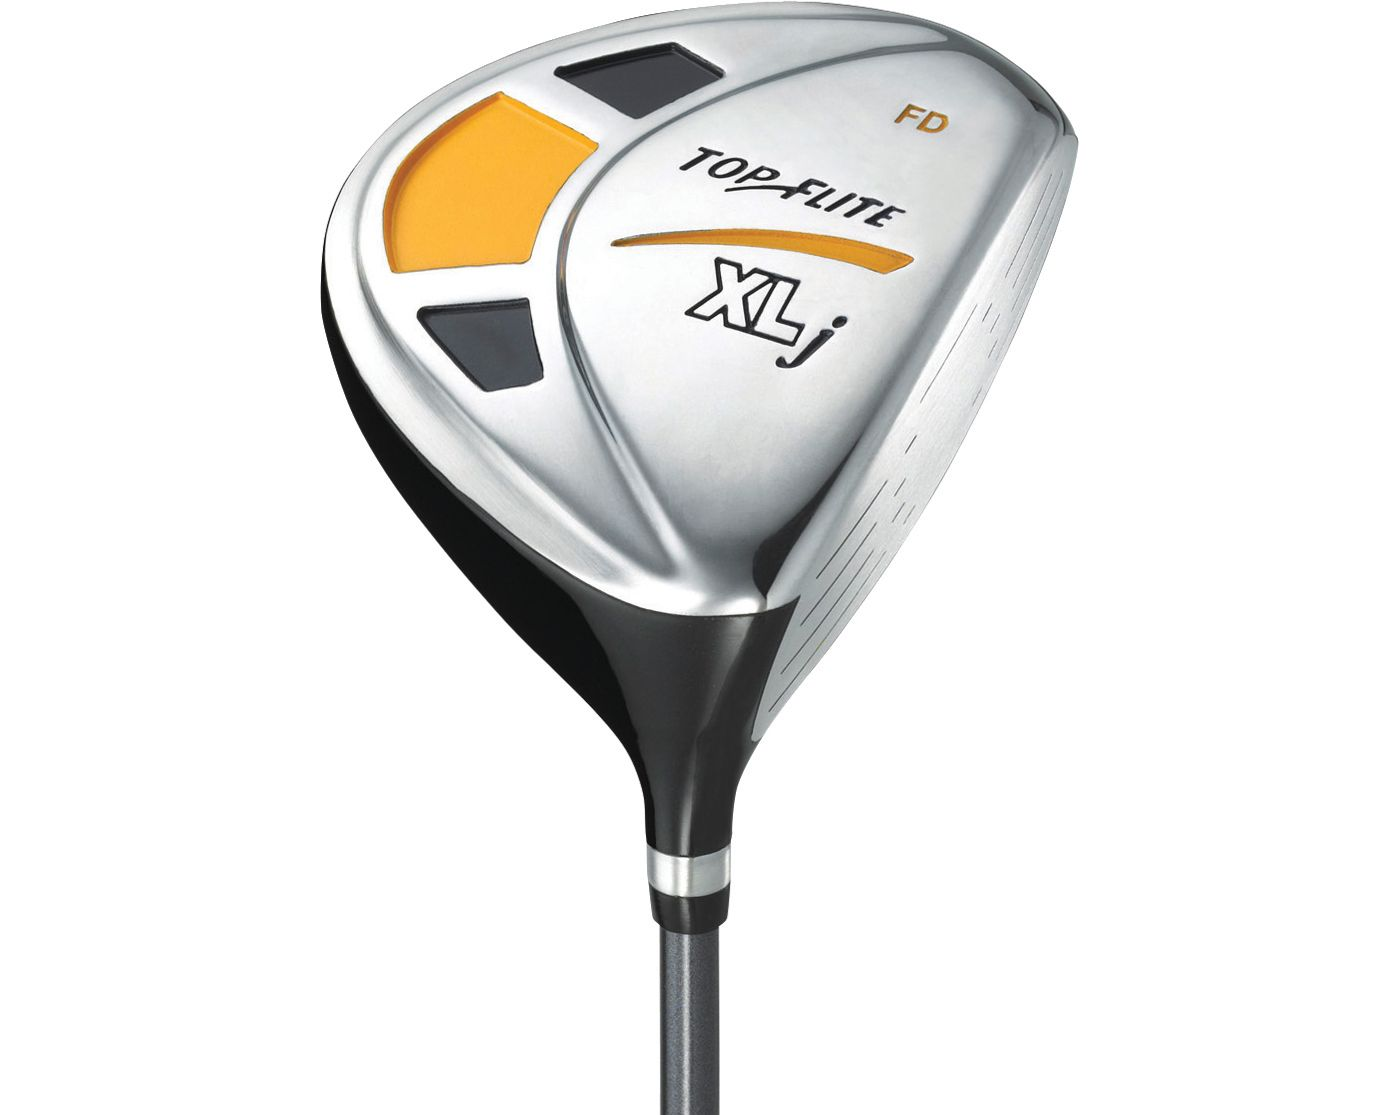 Top Flite Kids' XLj Driver (Height 45'' and under)